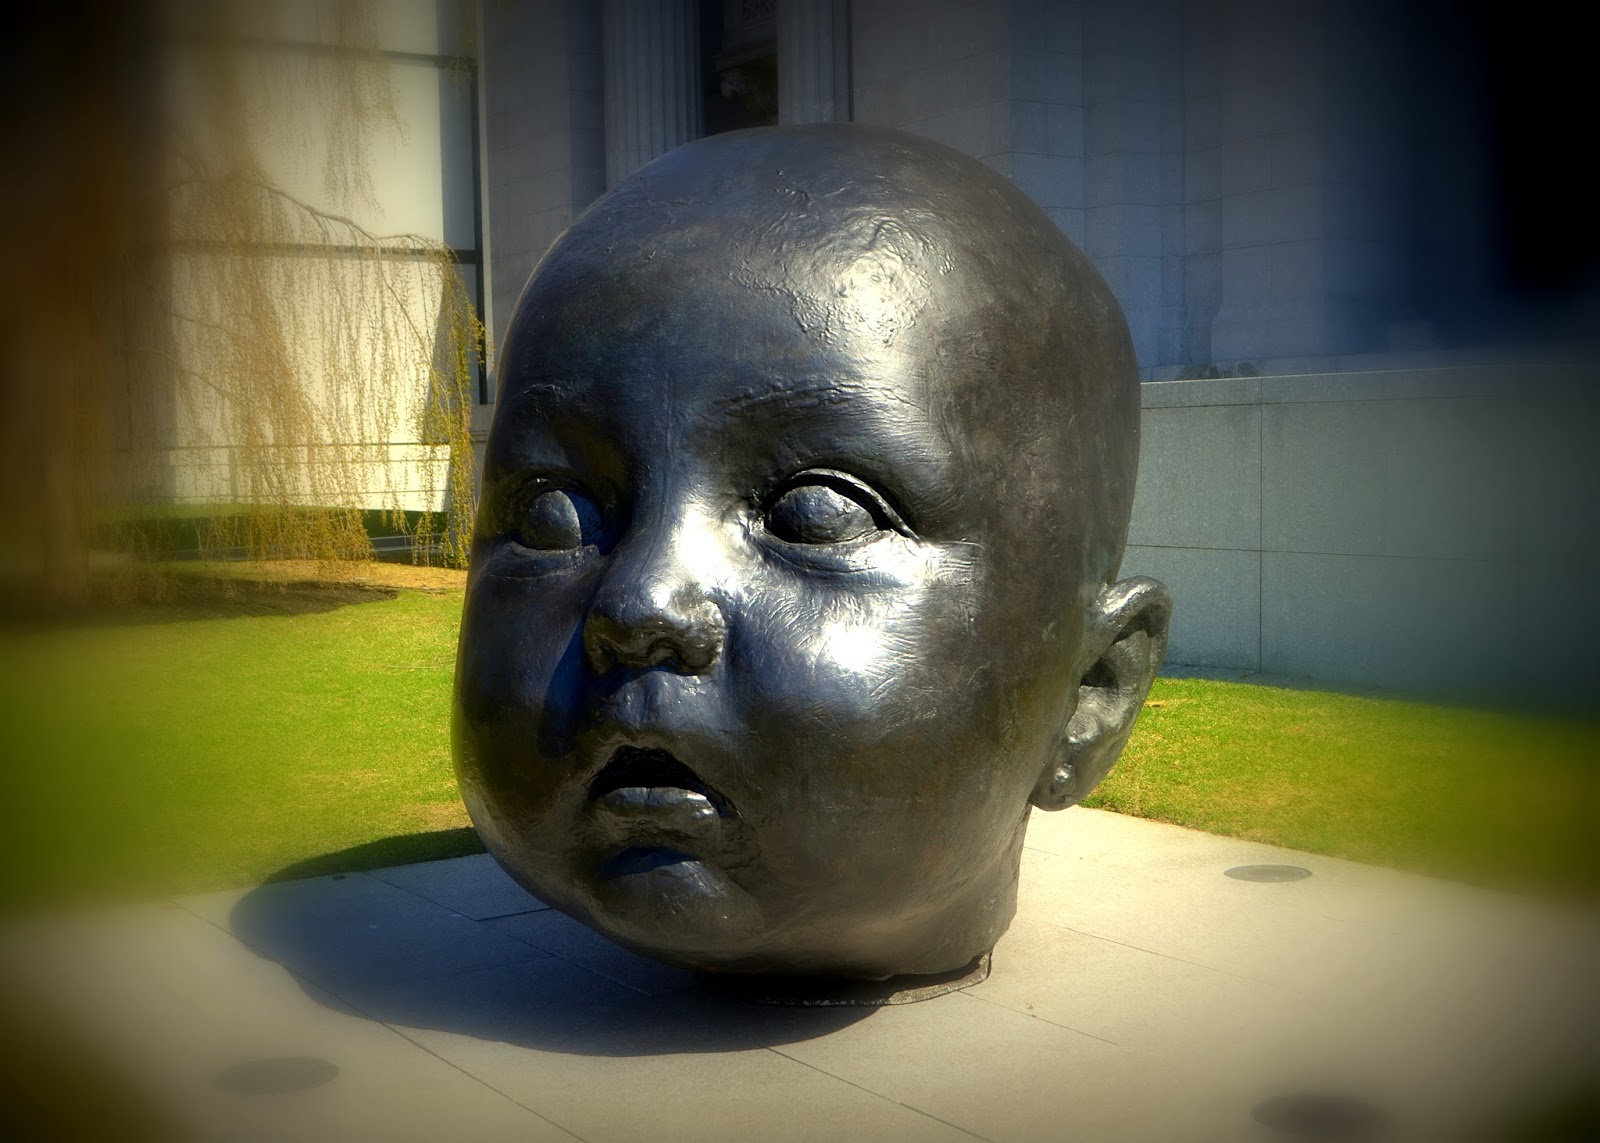 baby, head, bronze, mfa, museum of fine arts, boston, massachusetts